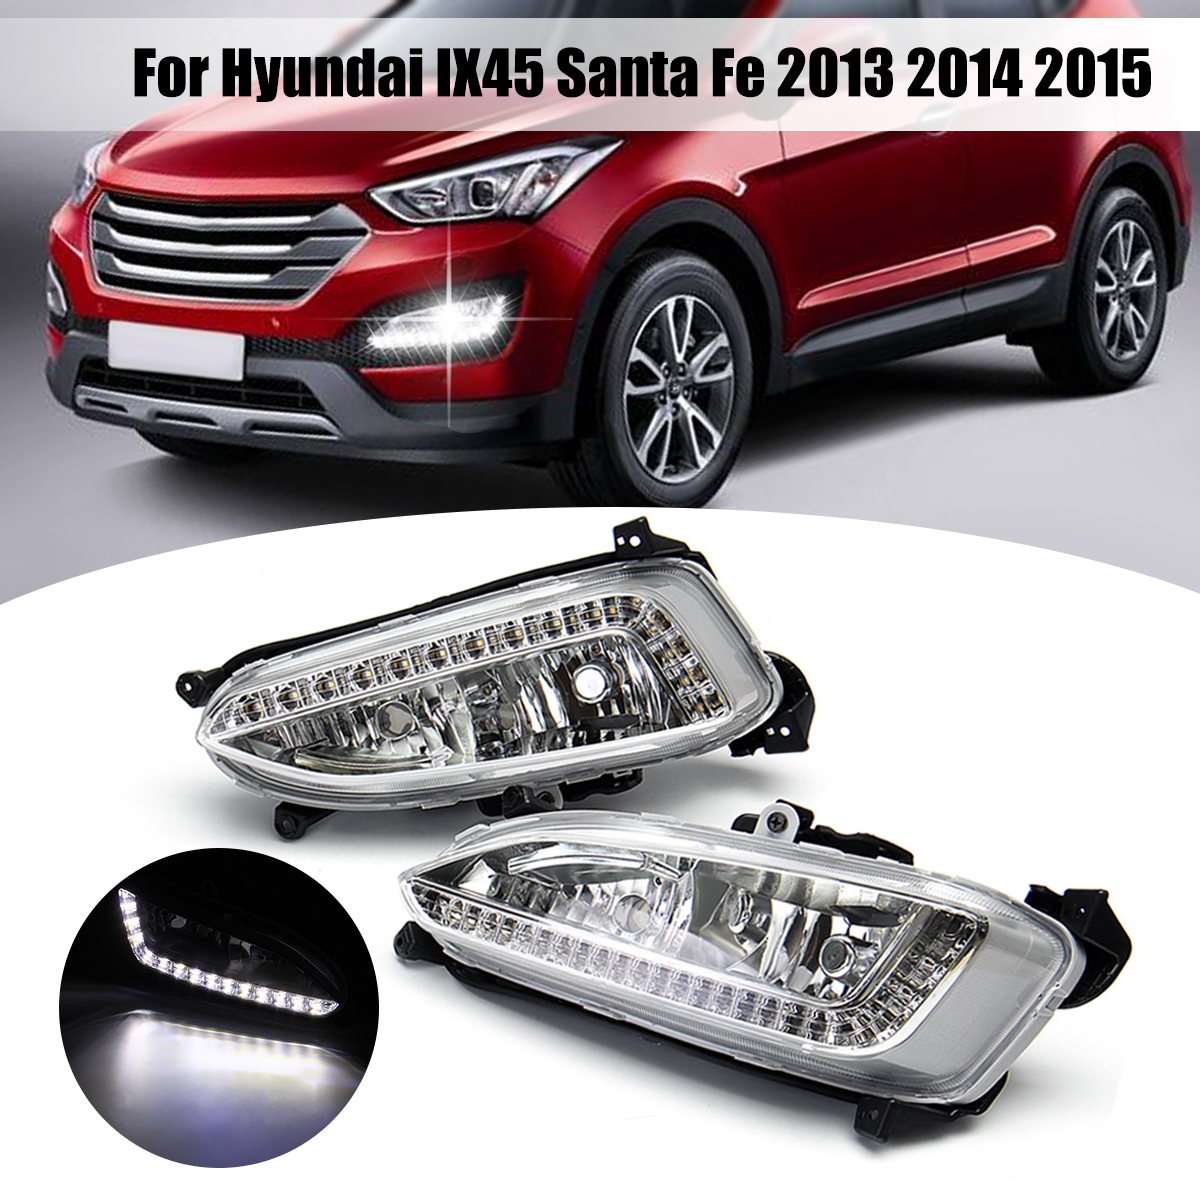 цена на 1 Pair 12V LED Car Fog Light Assembly for hyundai IX45 Santa Fe 2013 2014 2015 DRL Daytime Running Light Auto Accessories